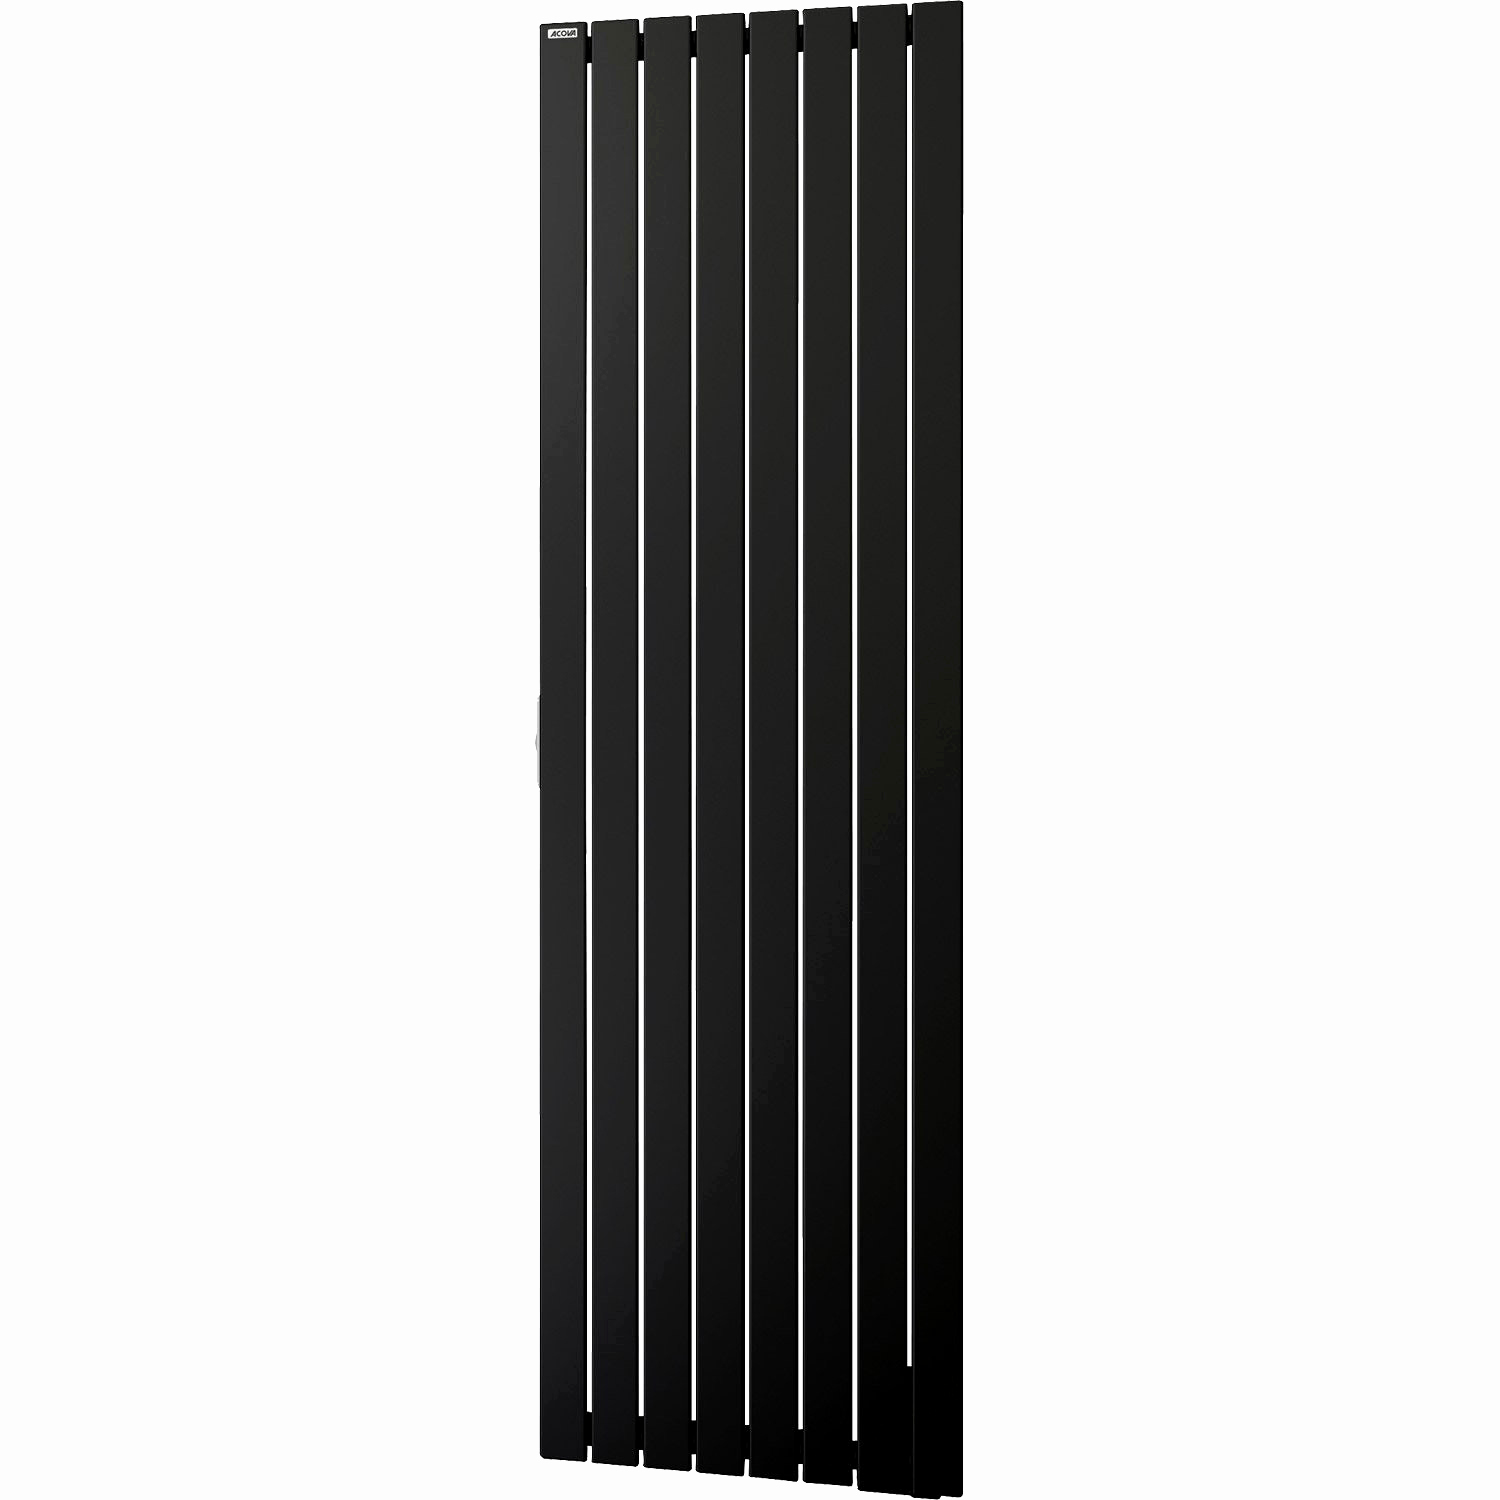 Radiateur Mural Leroy Merlin Radiateur Mural Leroy Merlin Beau Collection 36 Luxe Collection De